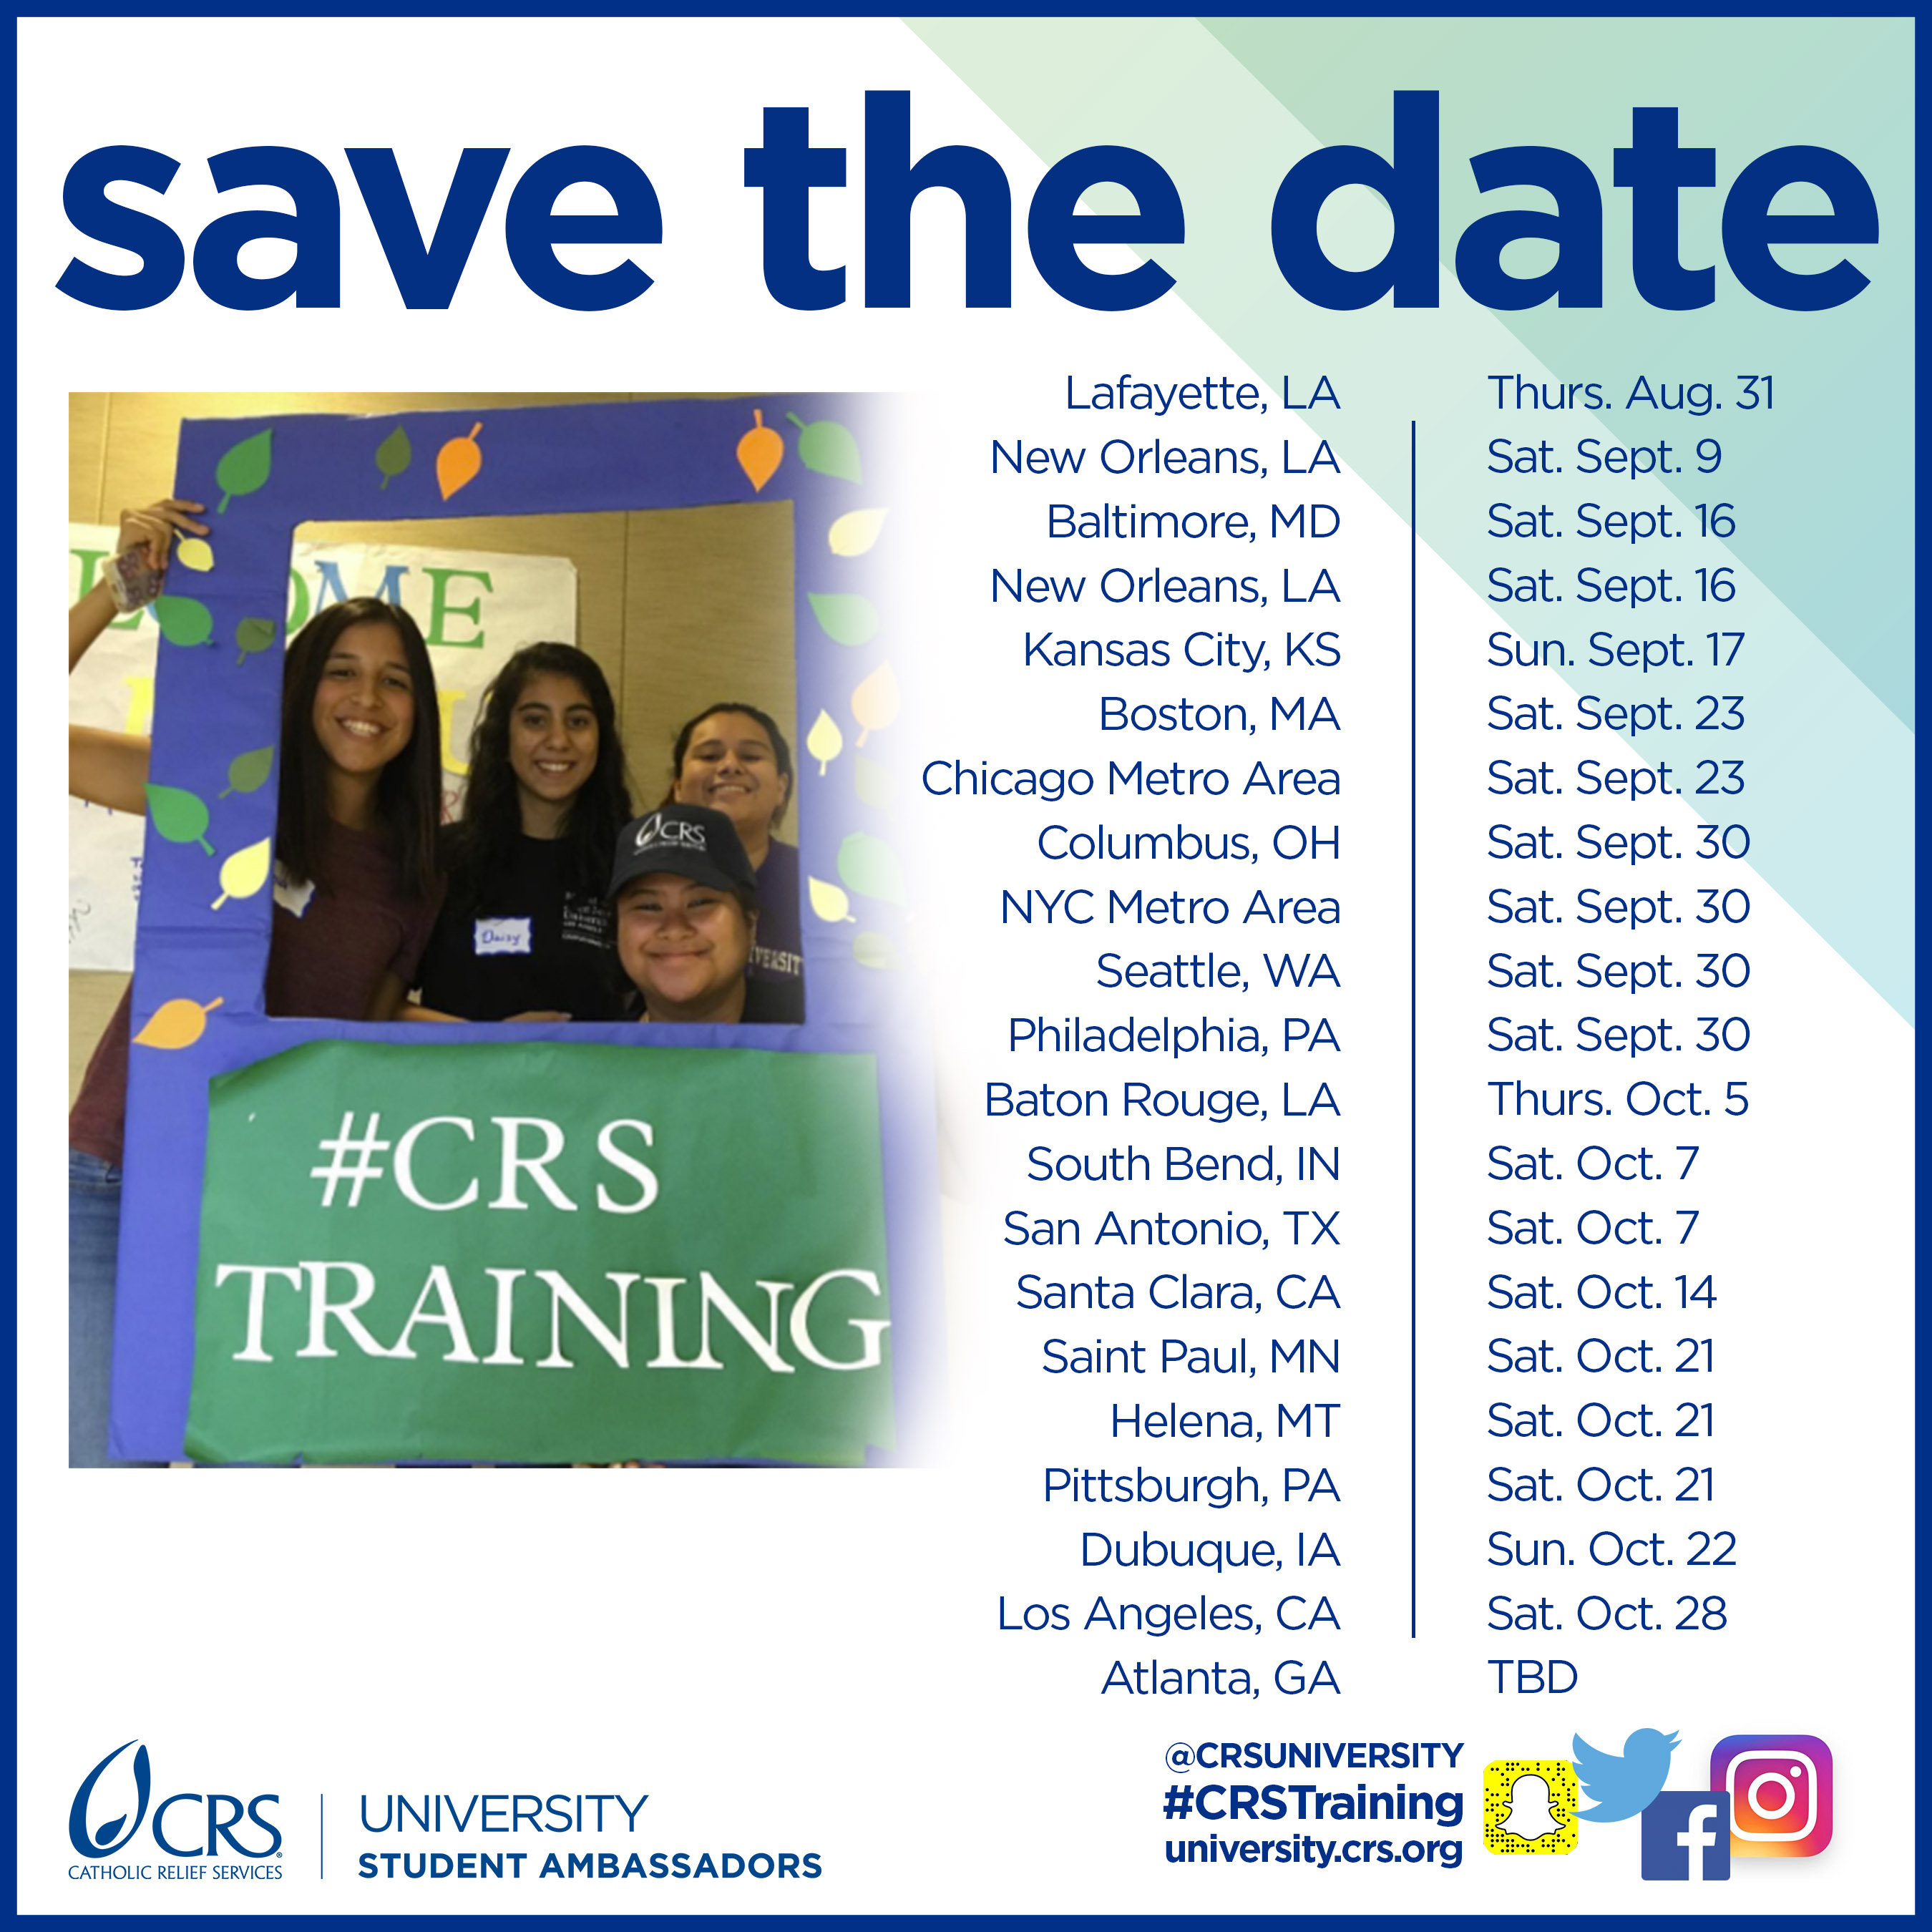 Training Save the Date